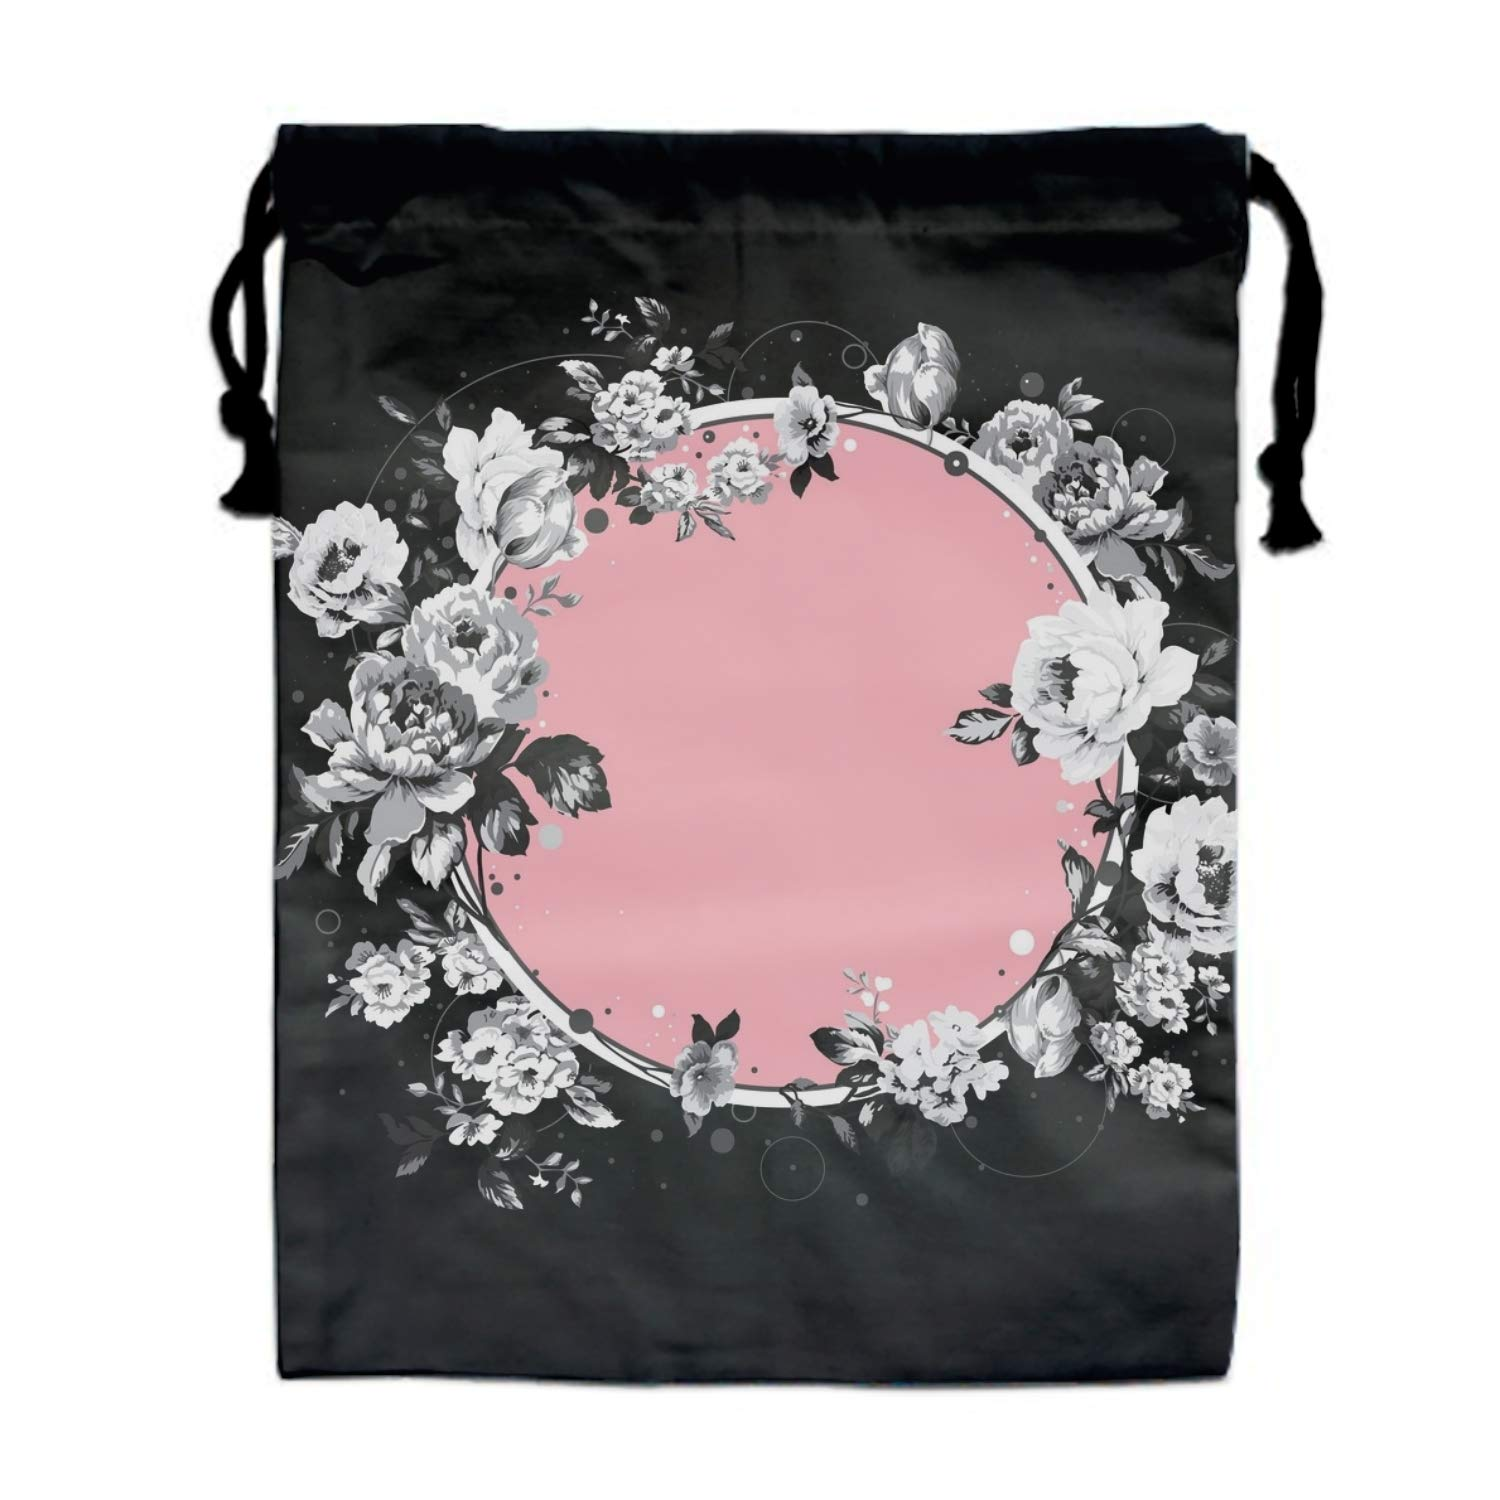 Circle Flower Drawstring Pouches Candy Jewelry Party Wedding Favor Present Bags 15.75/11.8''